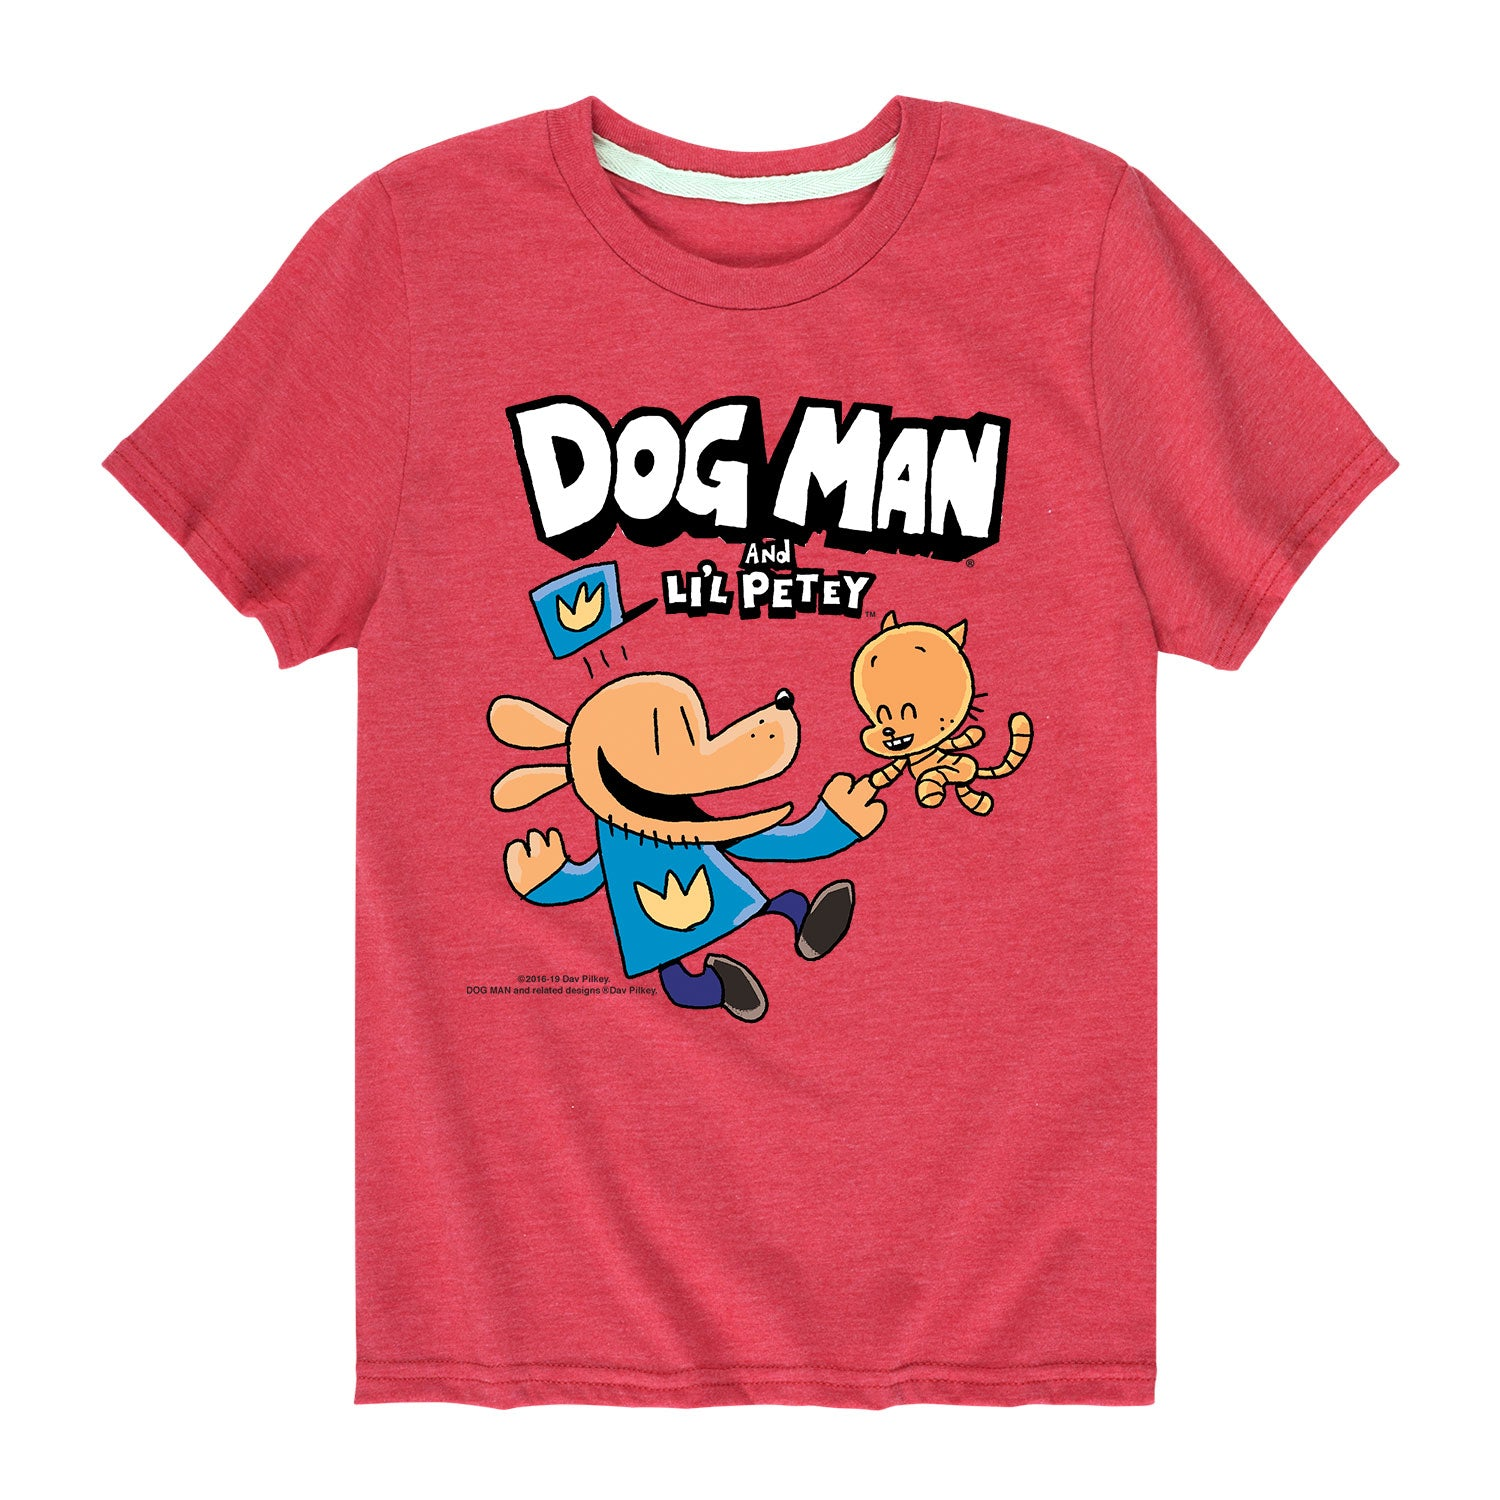 Dog Man and Lil Petey - Youth & Toddler Short Sleeve T-Shirt